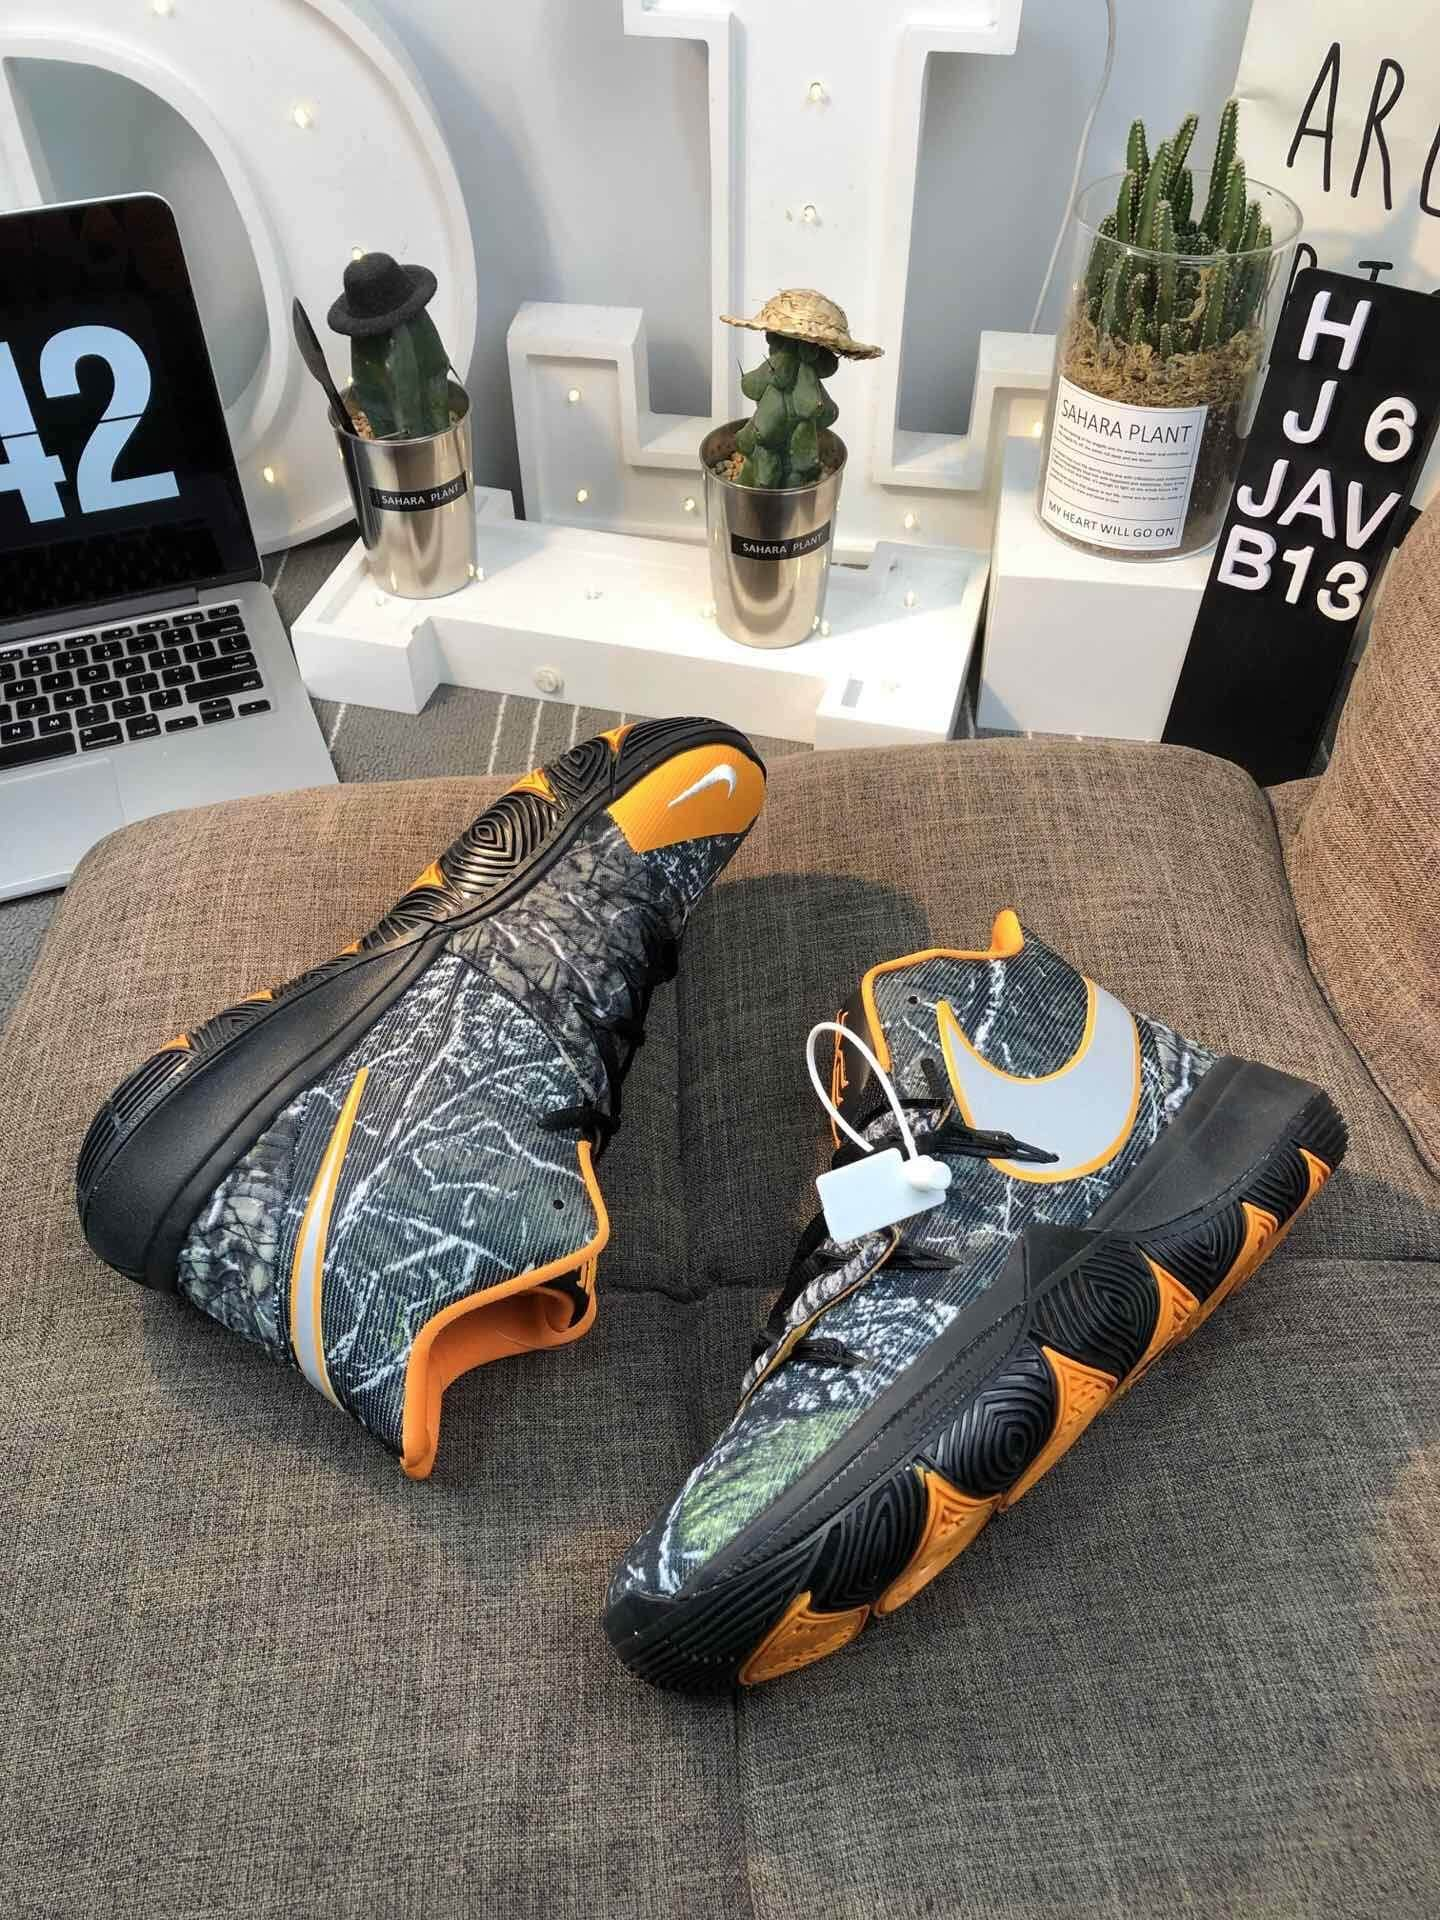 1faf4c086b7 Men s Basketball Shoes. 23732 items found in Basketball Shoes. 100%original  Nike Kyrie 5 Built-in air cushion antiskid shock-absorbing Practical